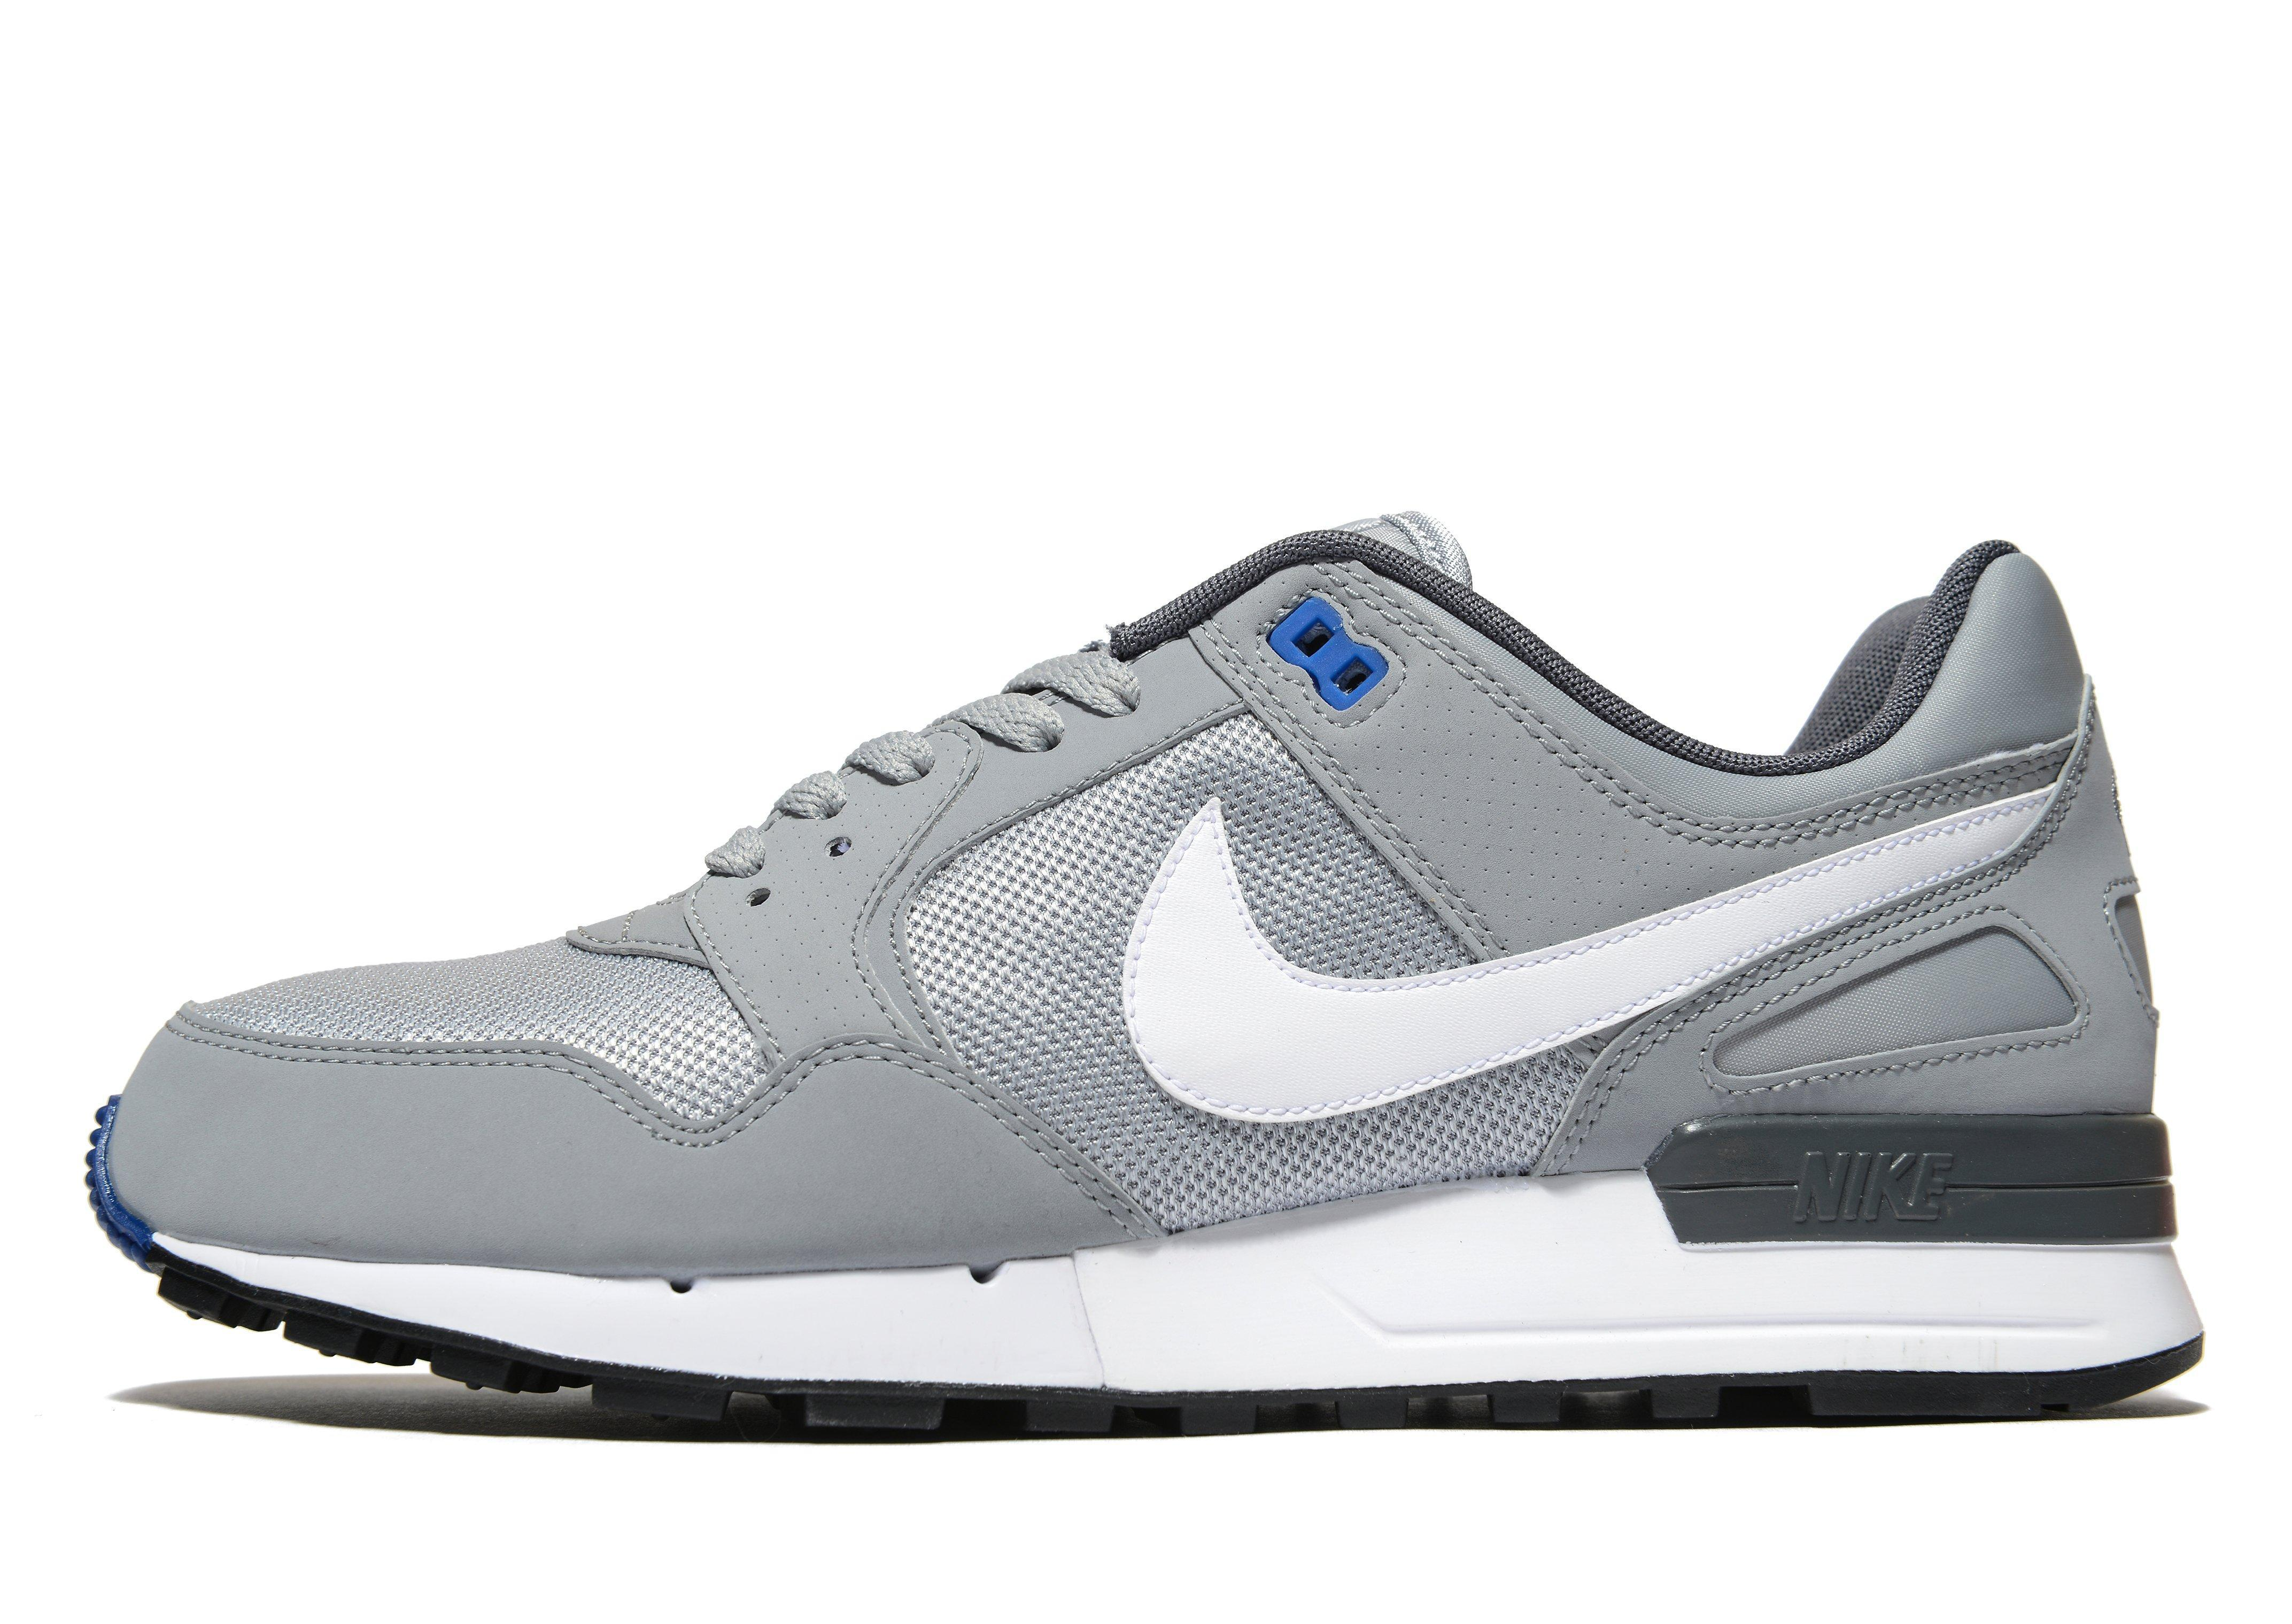 lyst nike pegasus 89 in gray for men. Black Bedroom Furniture Sets. Home Design Ideas